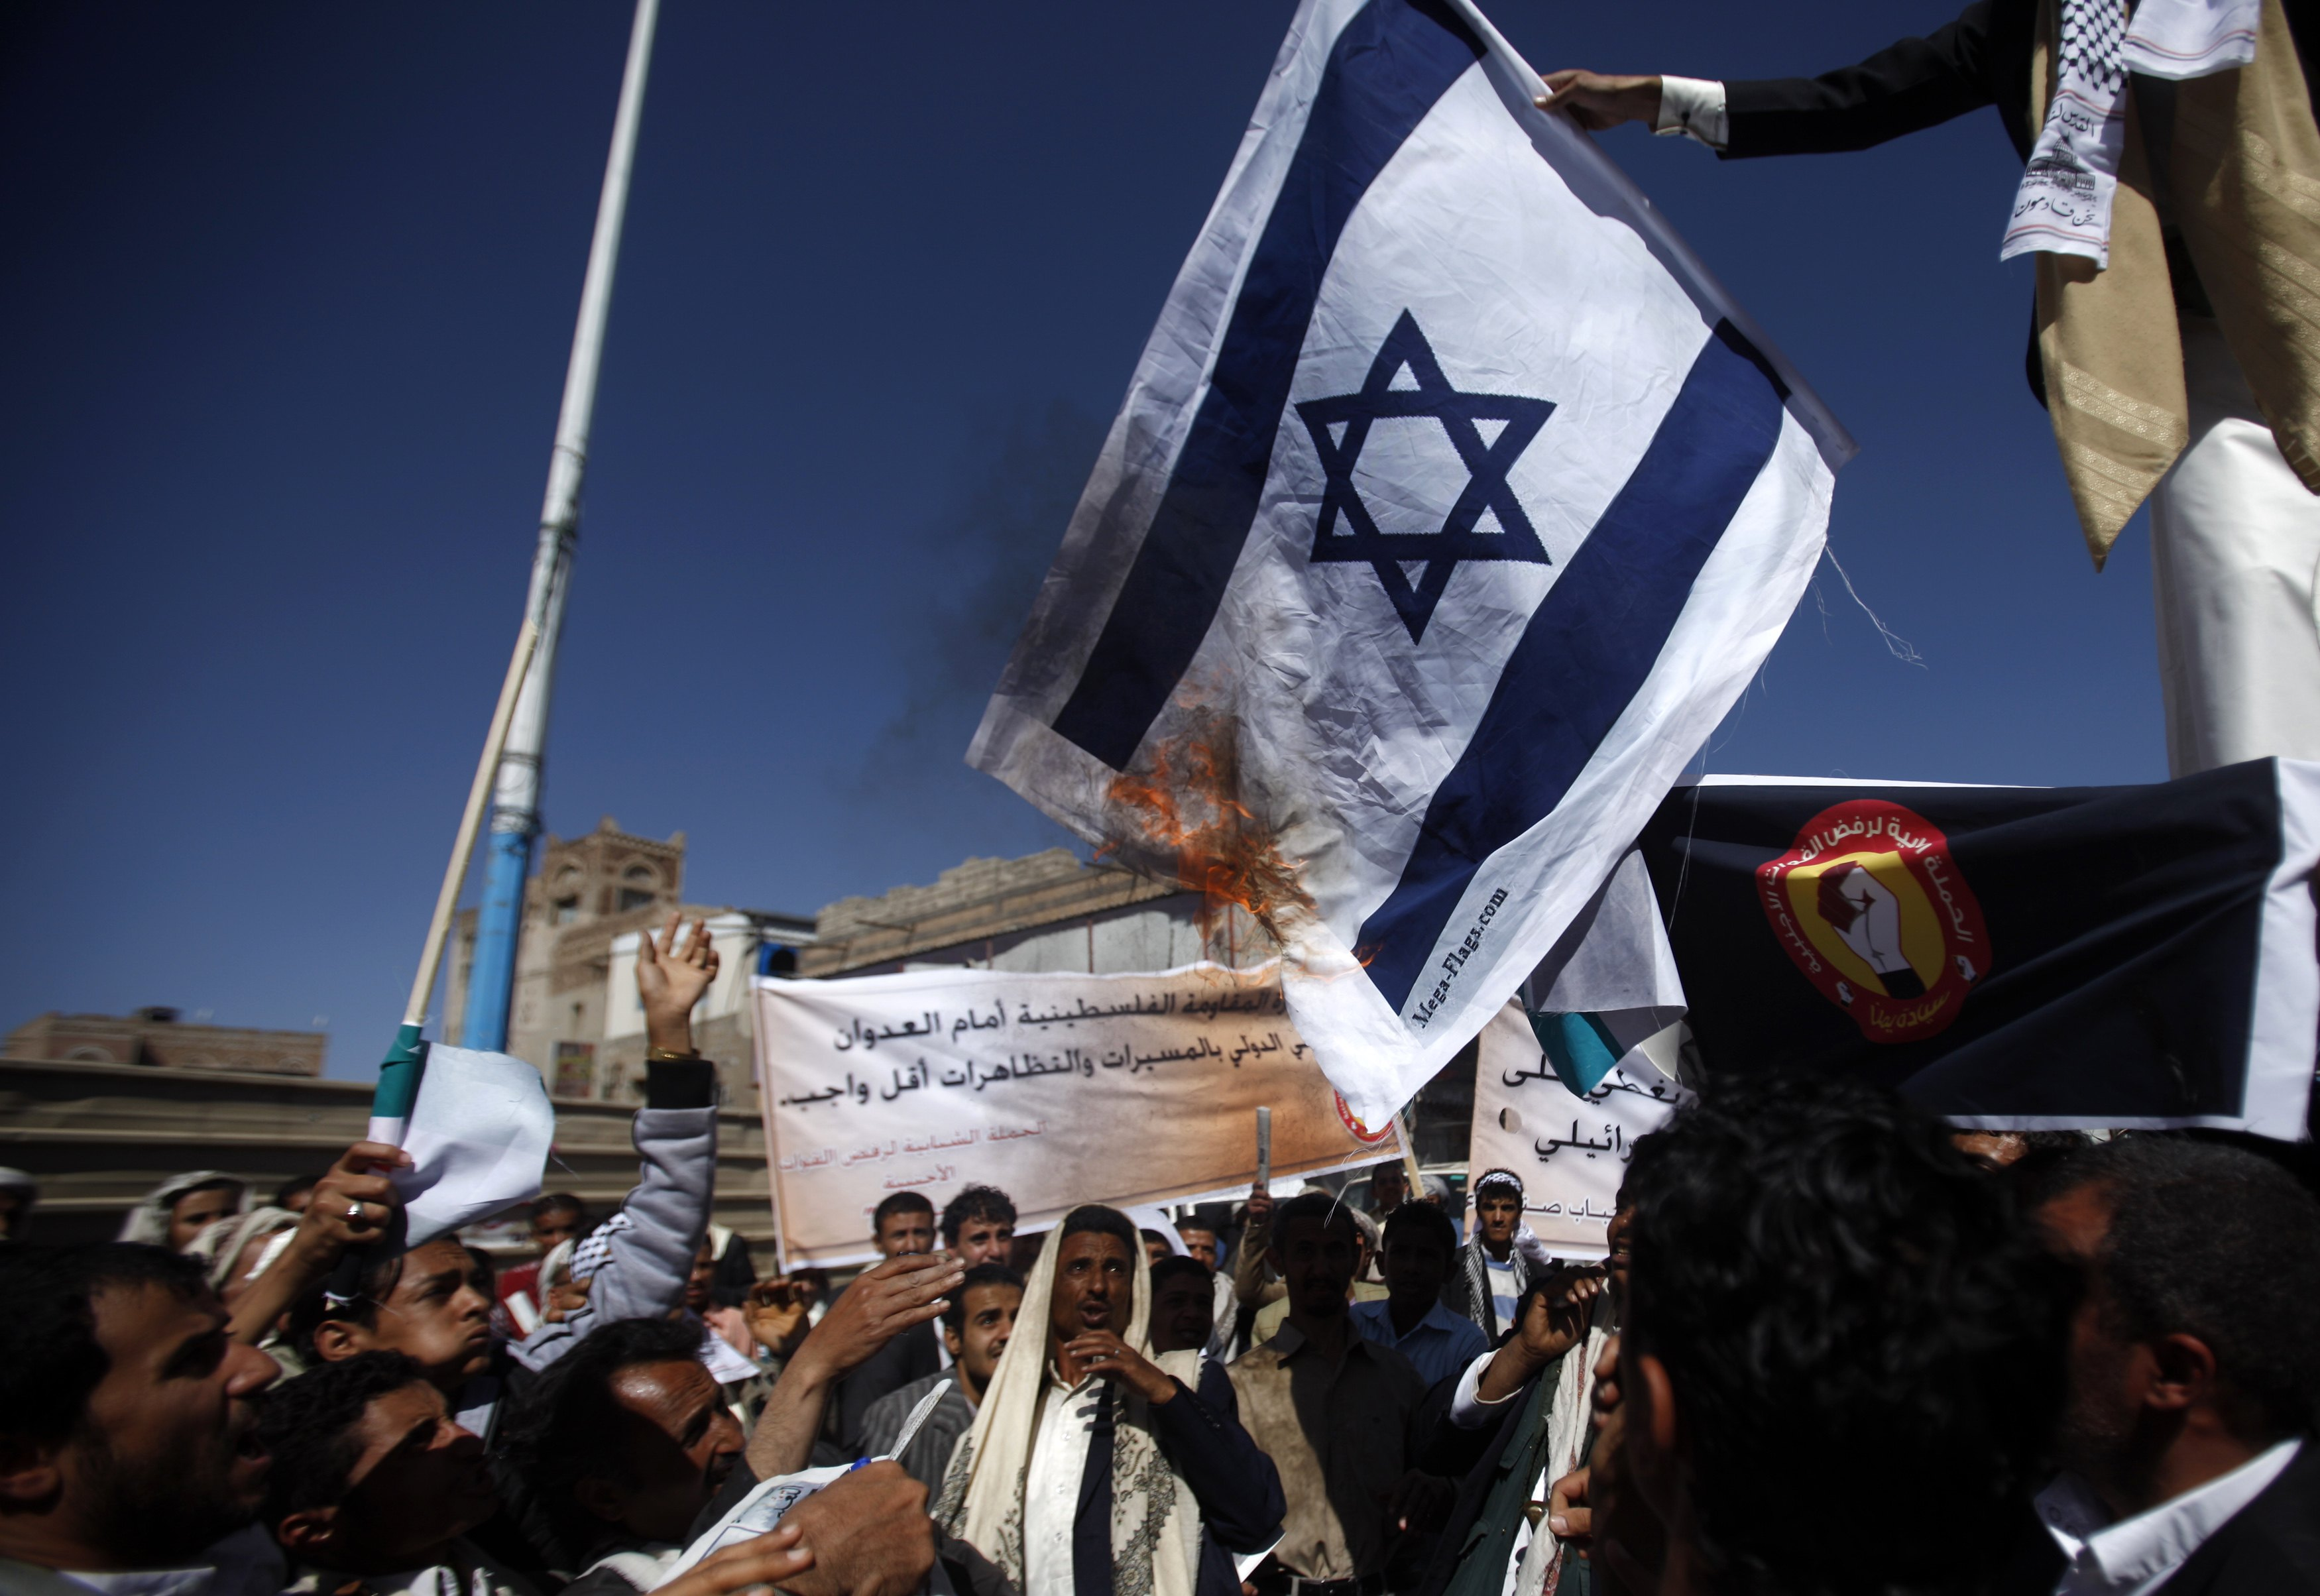 Israeli and Palestinian conflicts